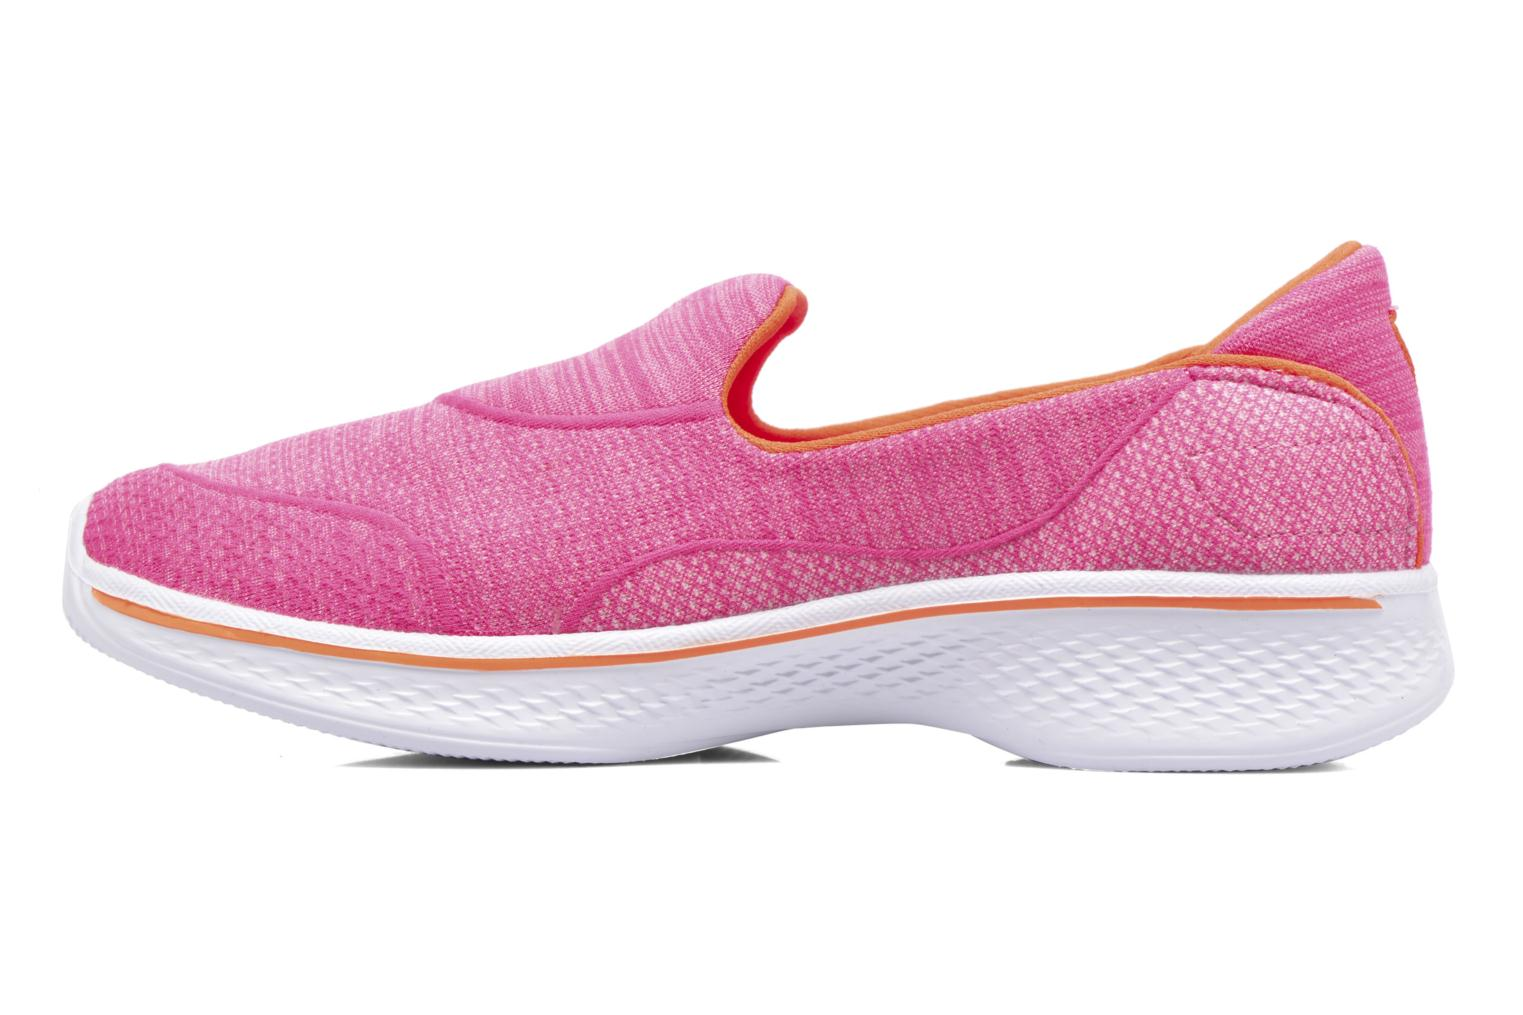 Go Walk 4 Speedy Sports Néon Pink/Orange